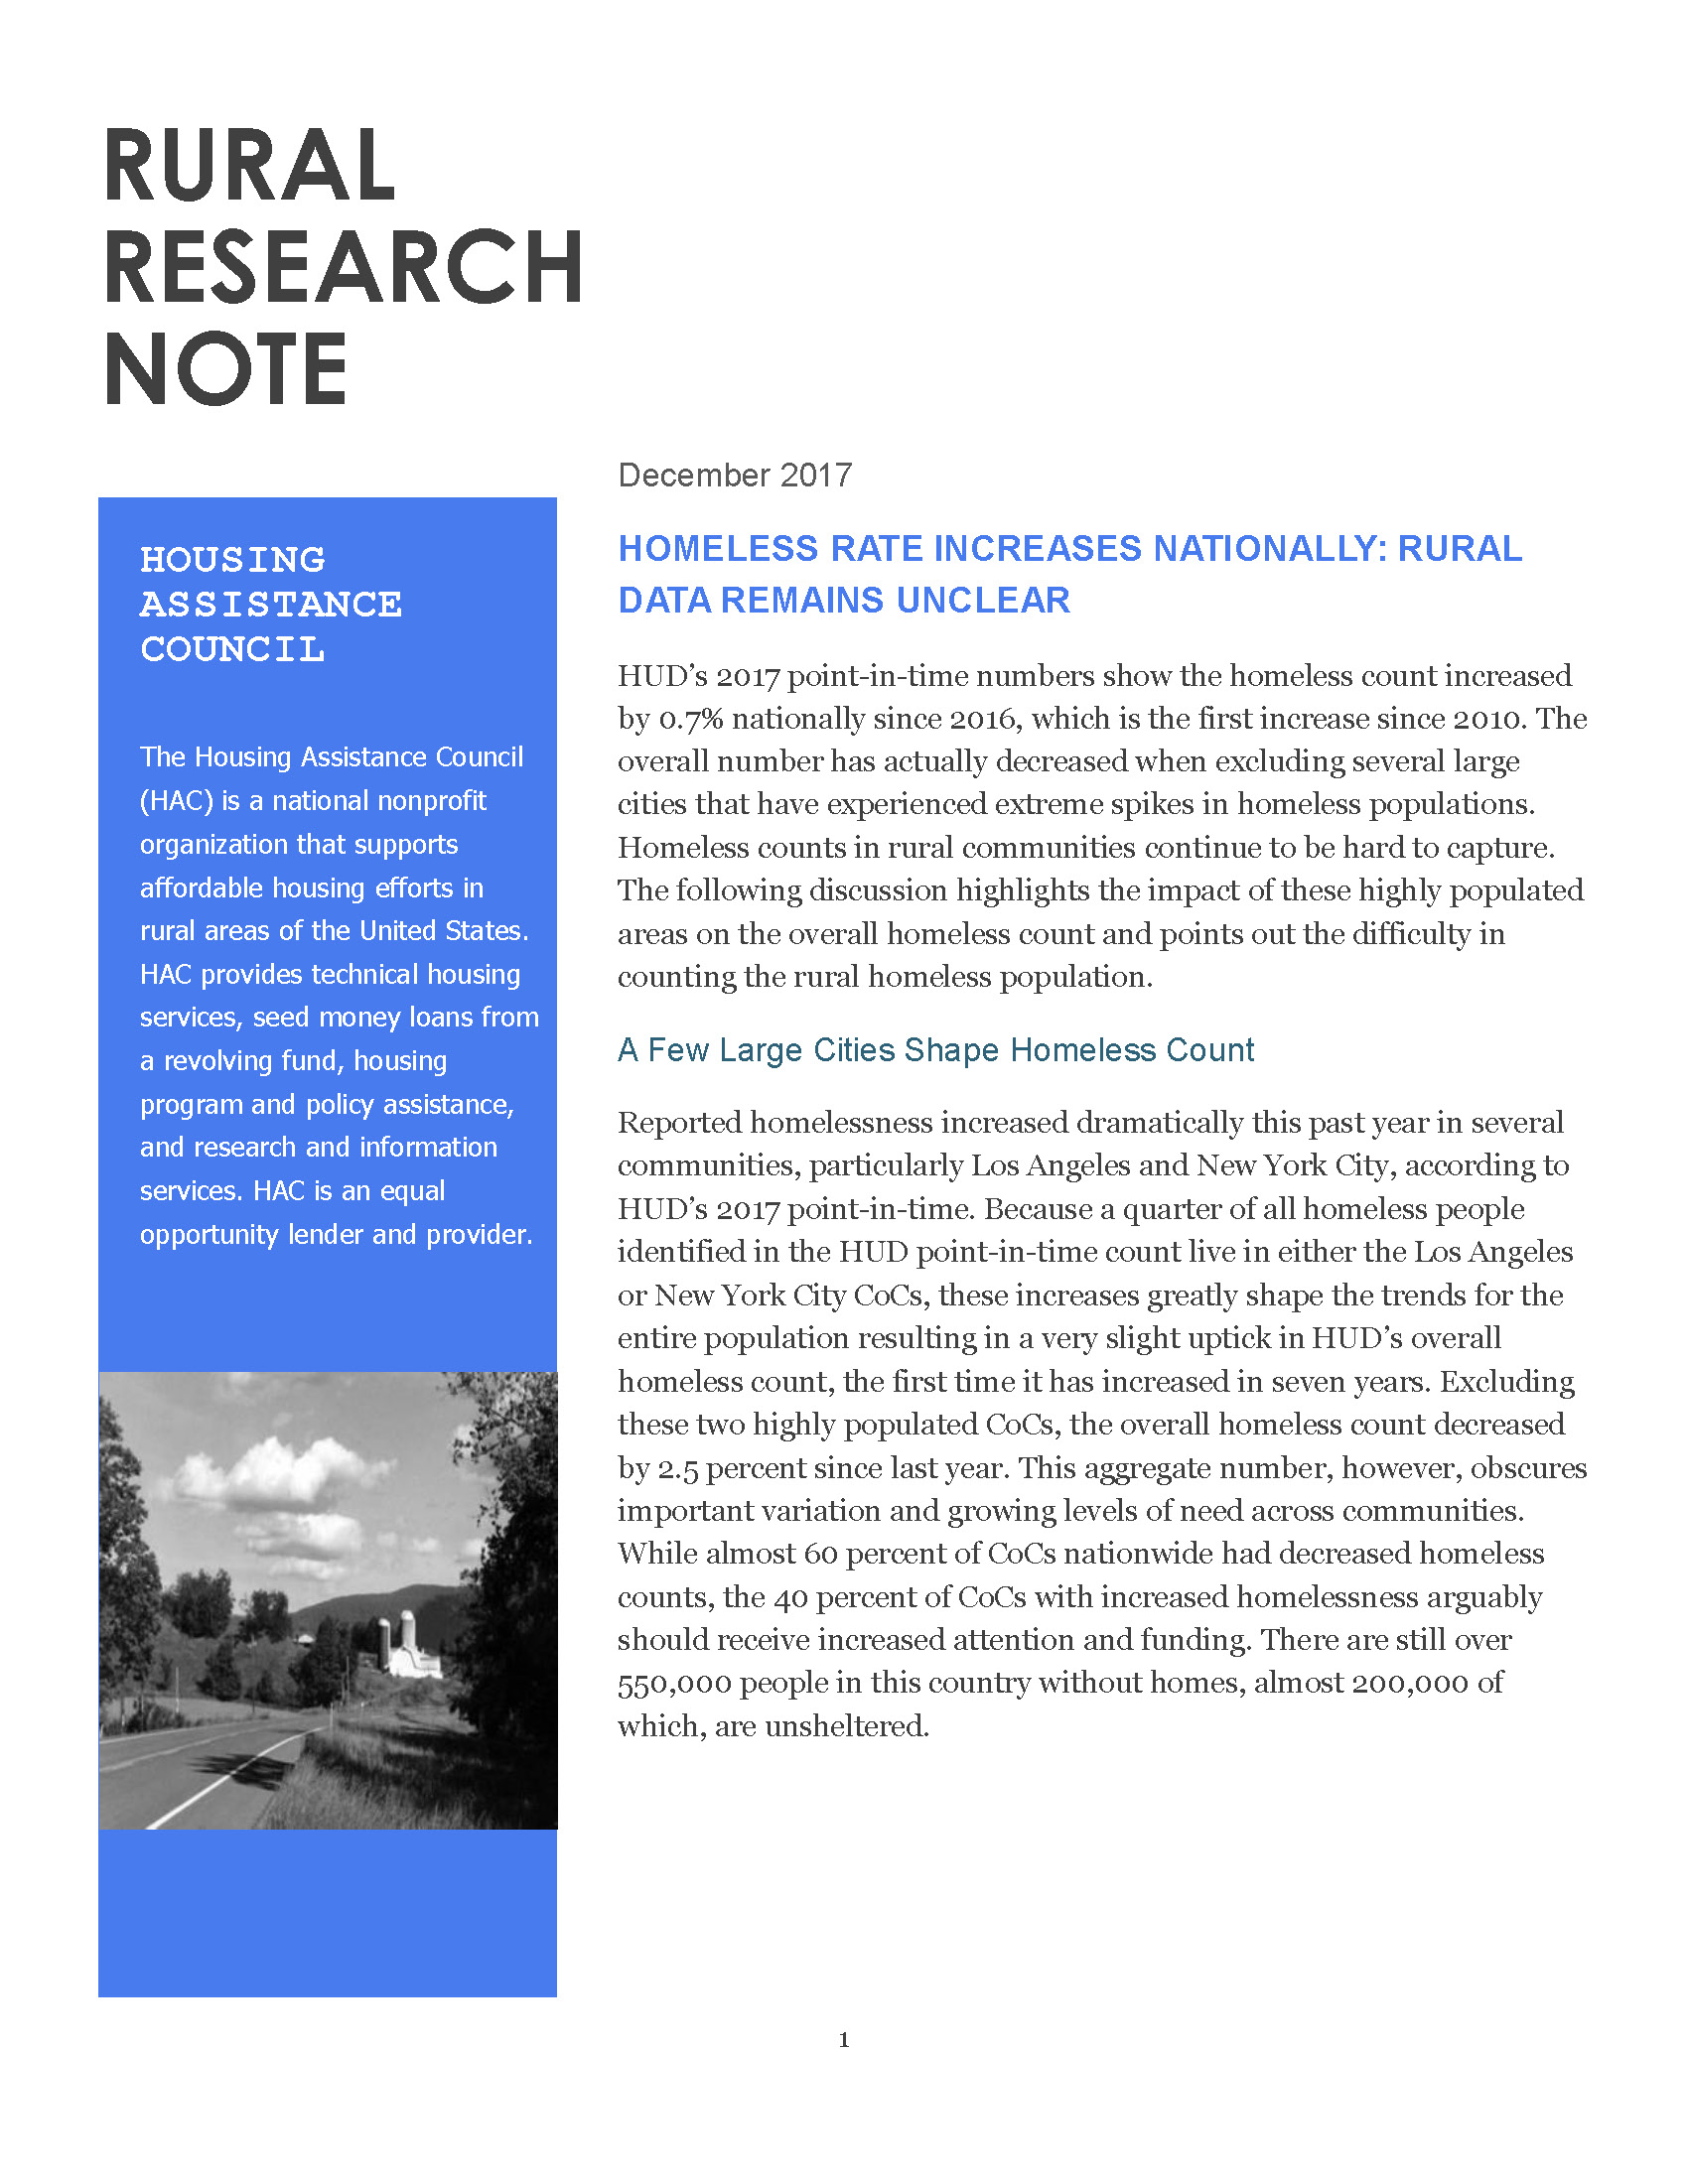 Rural Research Note Homelessness - Cover